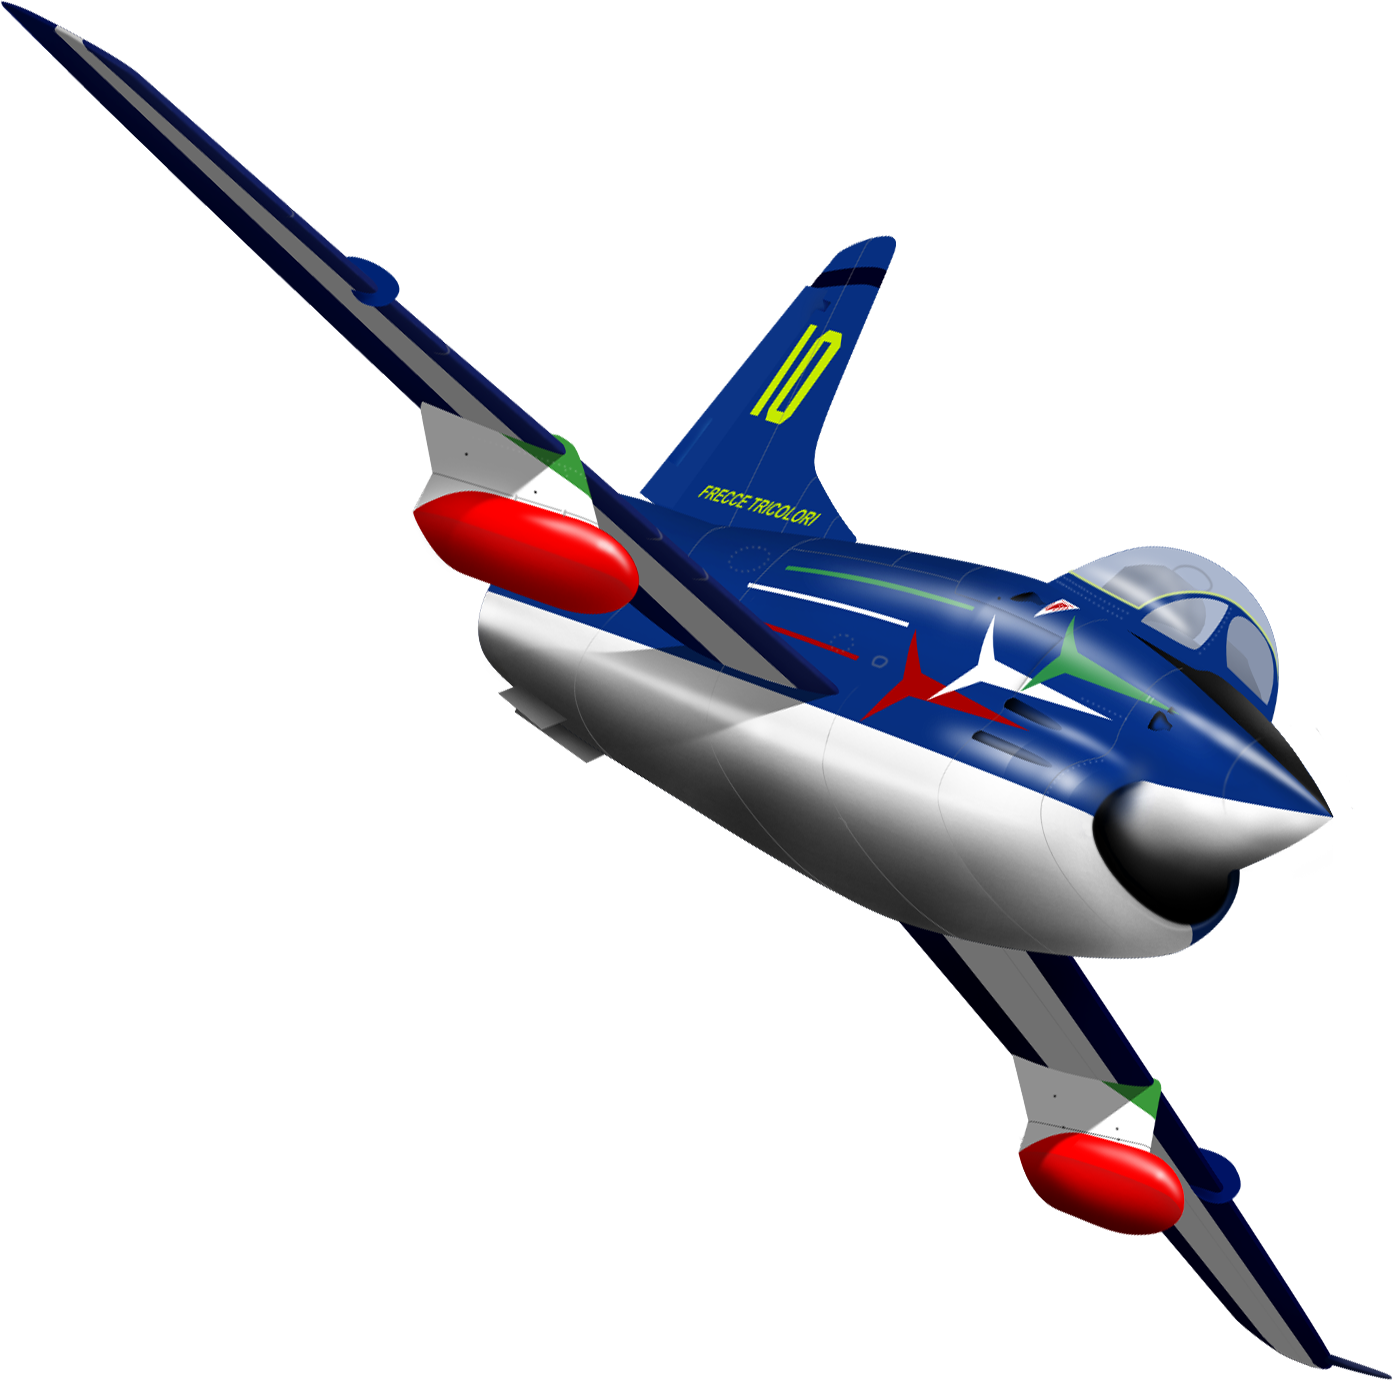 Flying clipart aerospace. File g best fitting